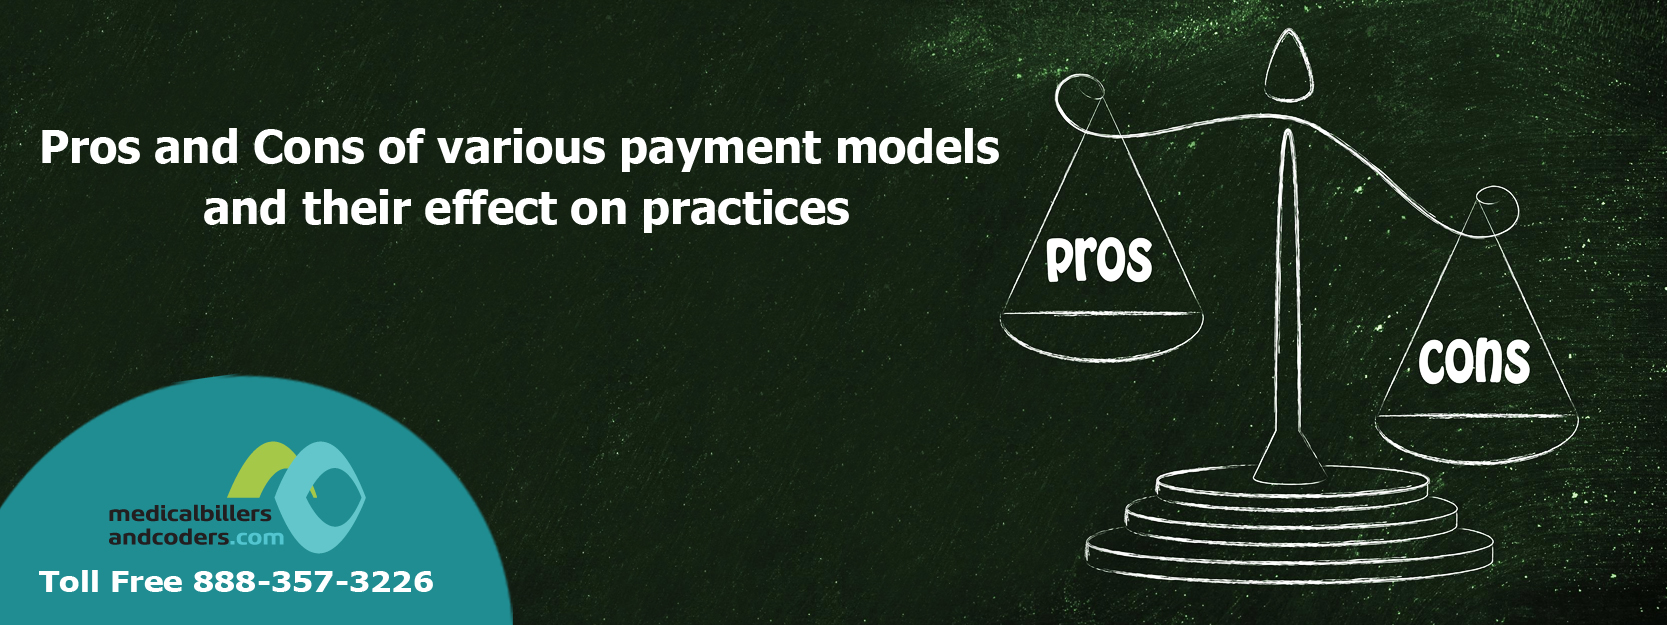 Article - Pros and Cons of Various Payment Models and their Effect on Practices